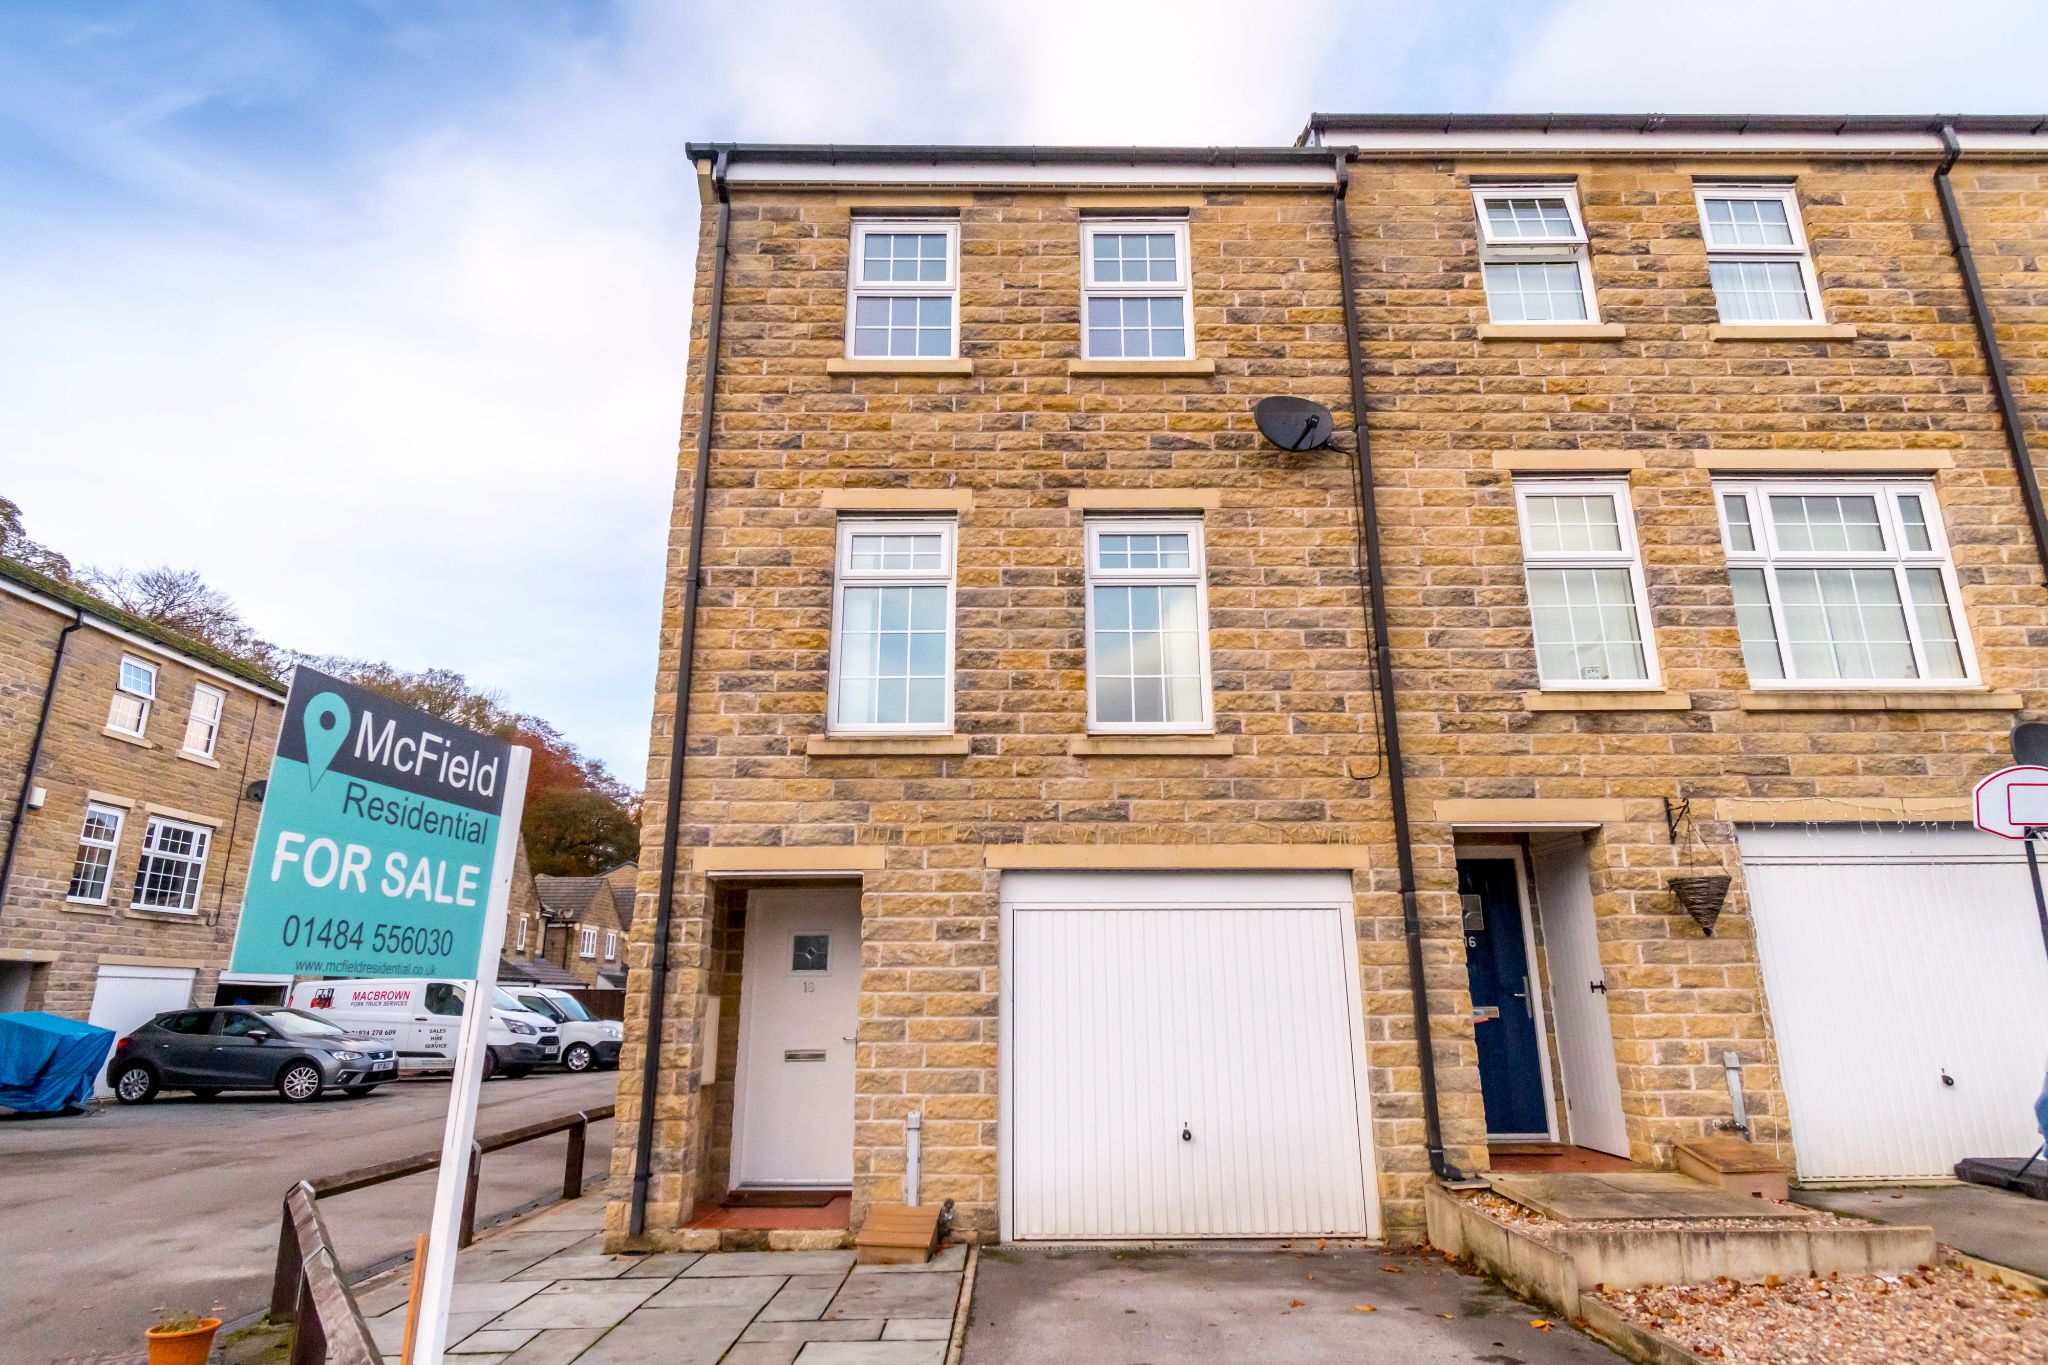 4 bedroom end terraced house For Sale in Brighouse - Front aspect